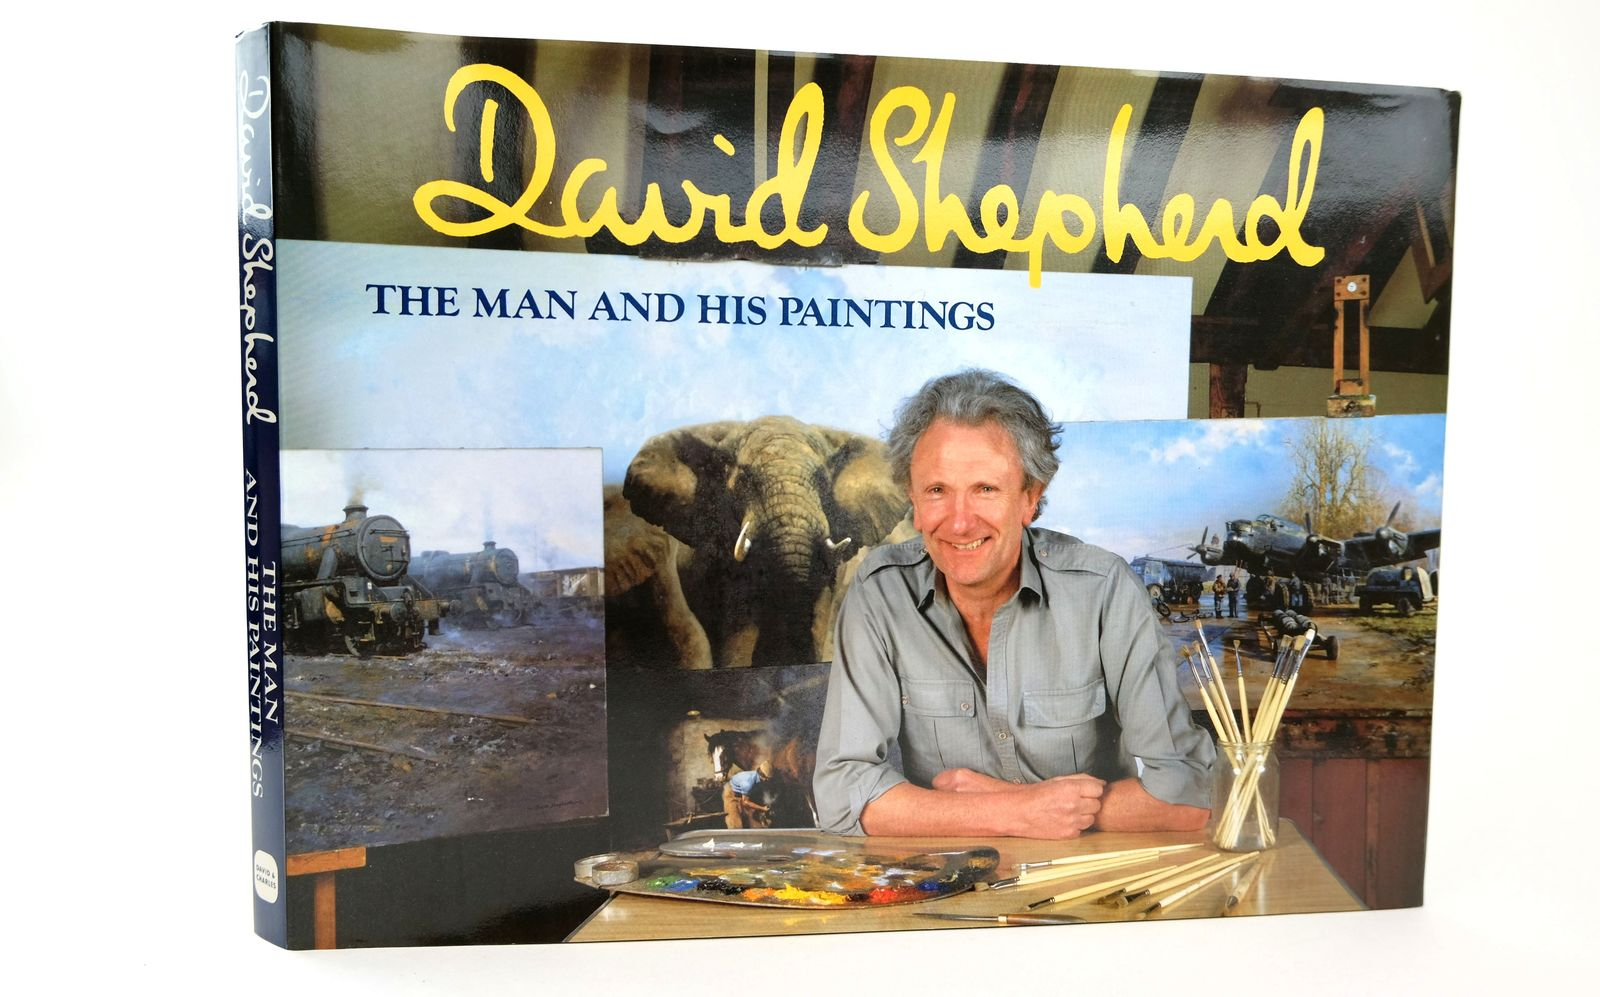 Photo of DAVID SHEPHERD THE MAN AND HIS PAINTINGS